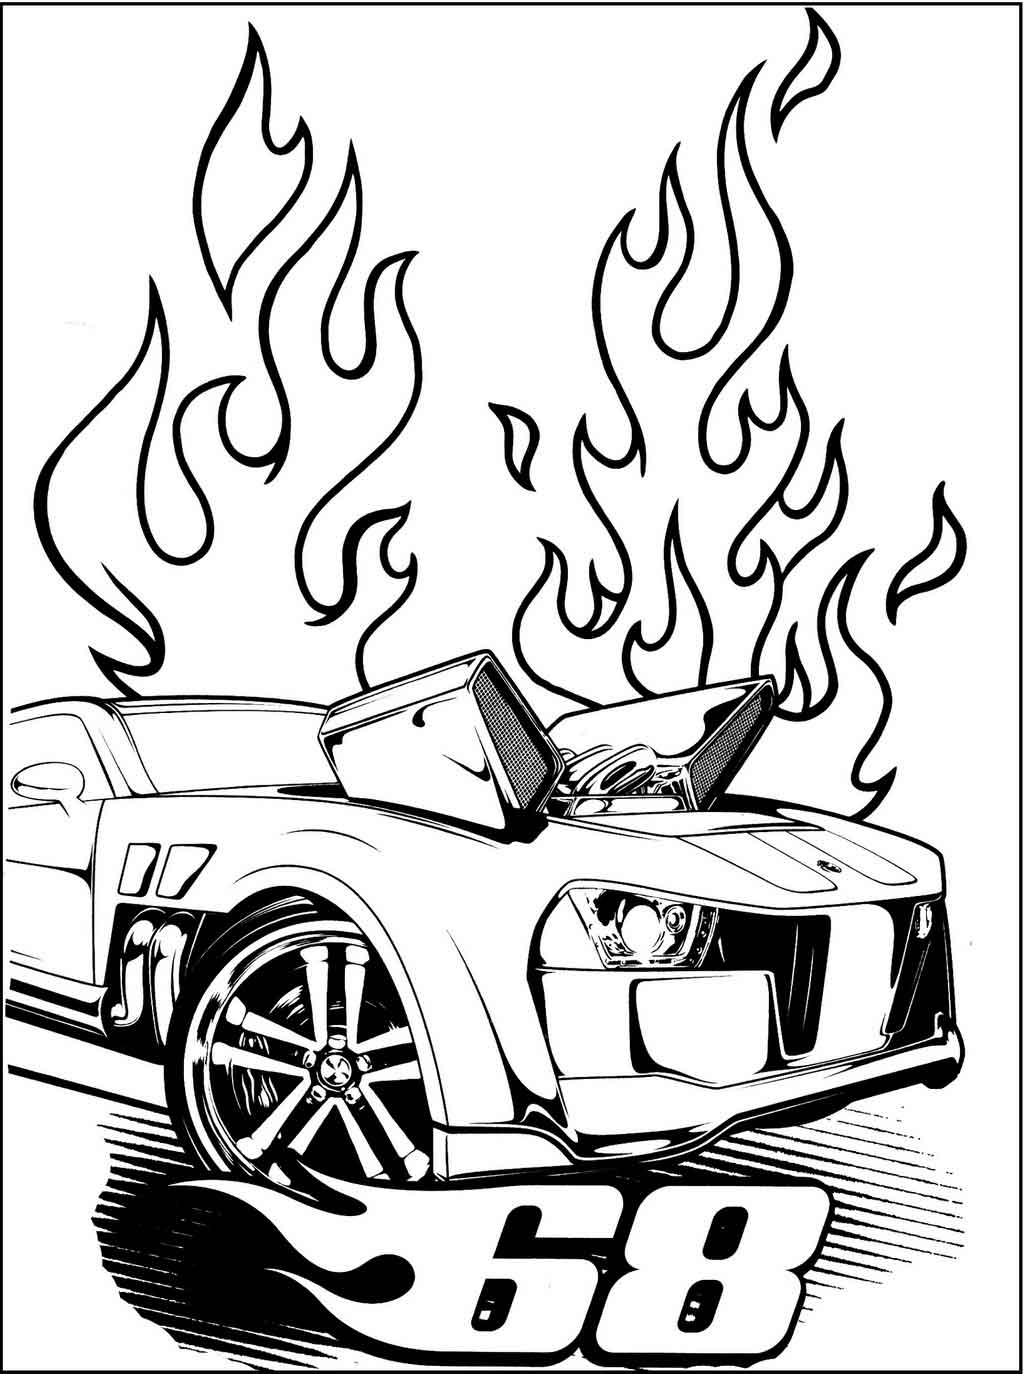 hot wheels images to print hot wheels pose cars coloring pages free kids coloring images print to wheels hot